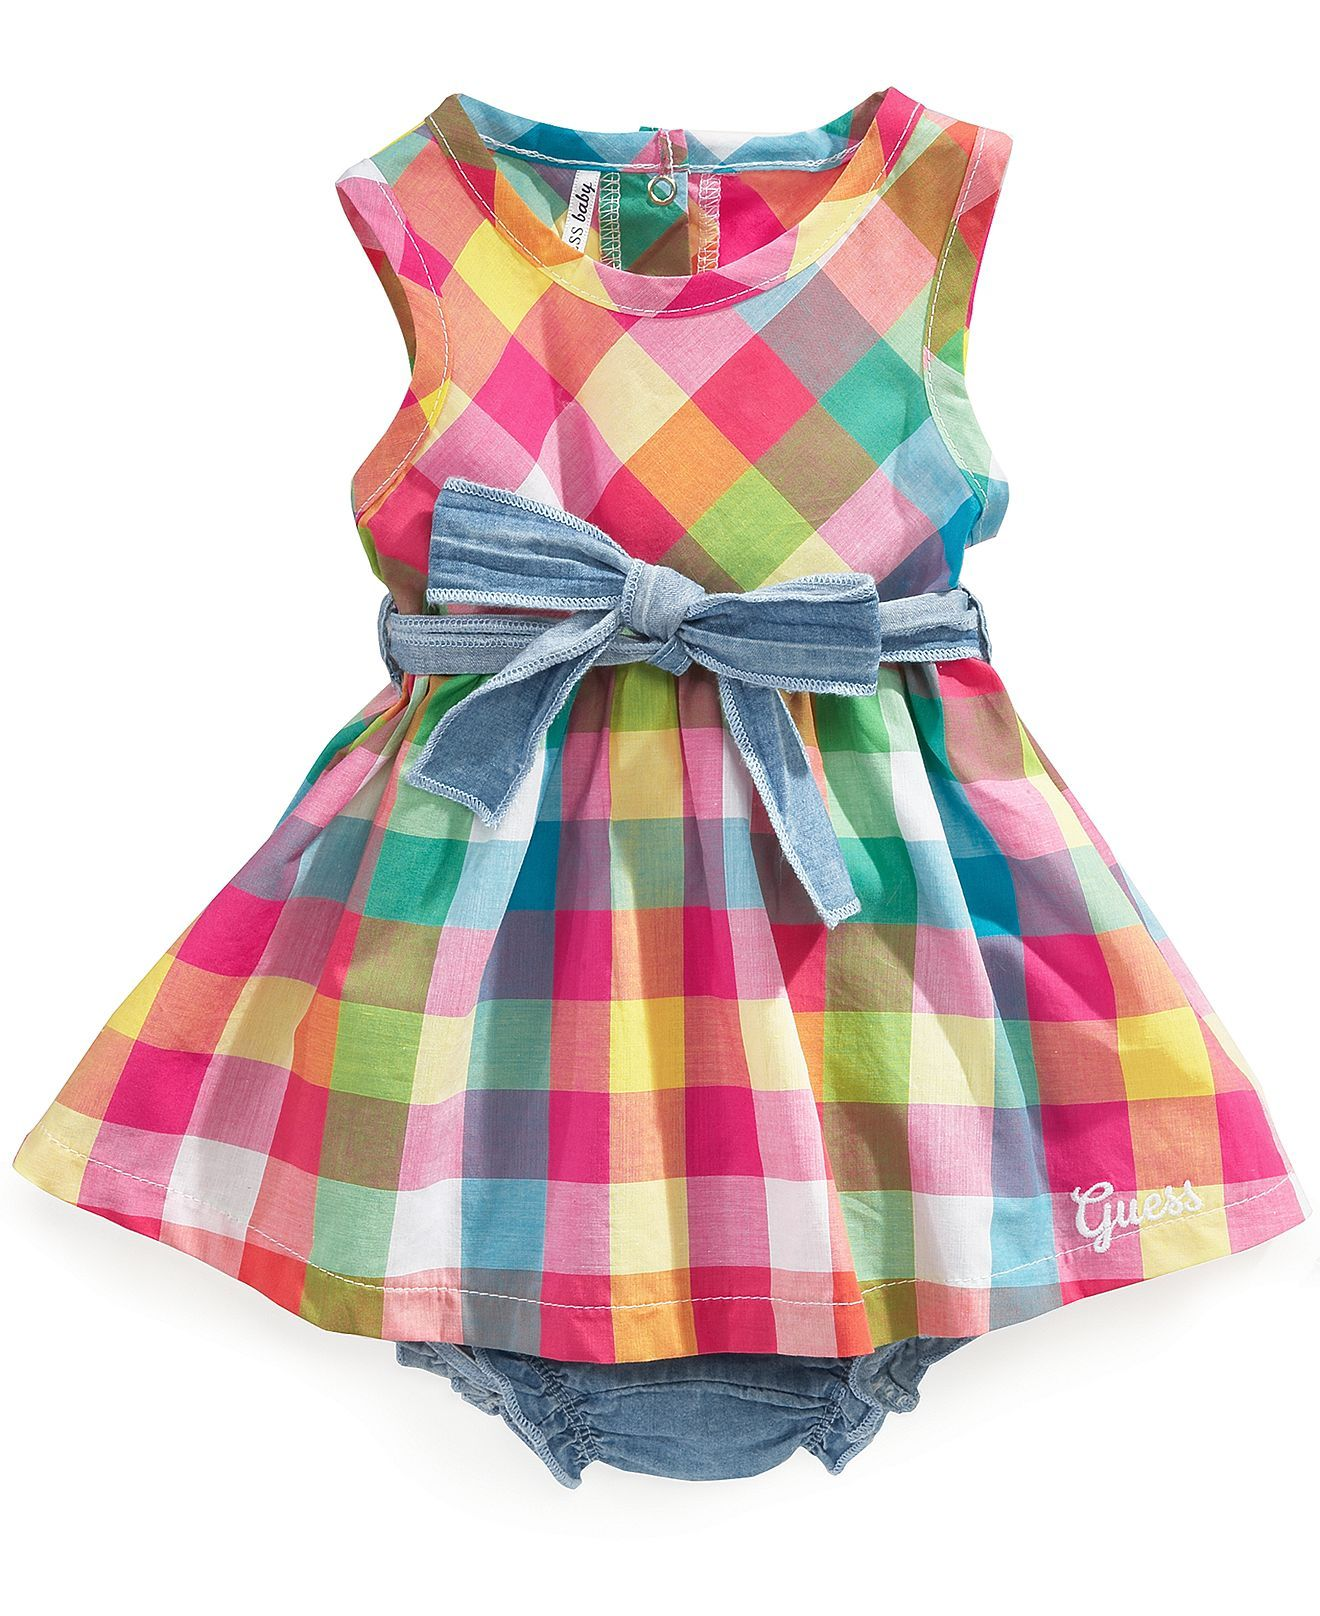 GUESS Baby Dress Baby Girls Newborn Sleeveless Plaid Dress Kids